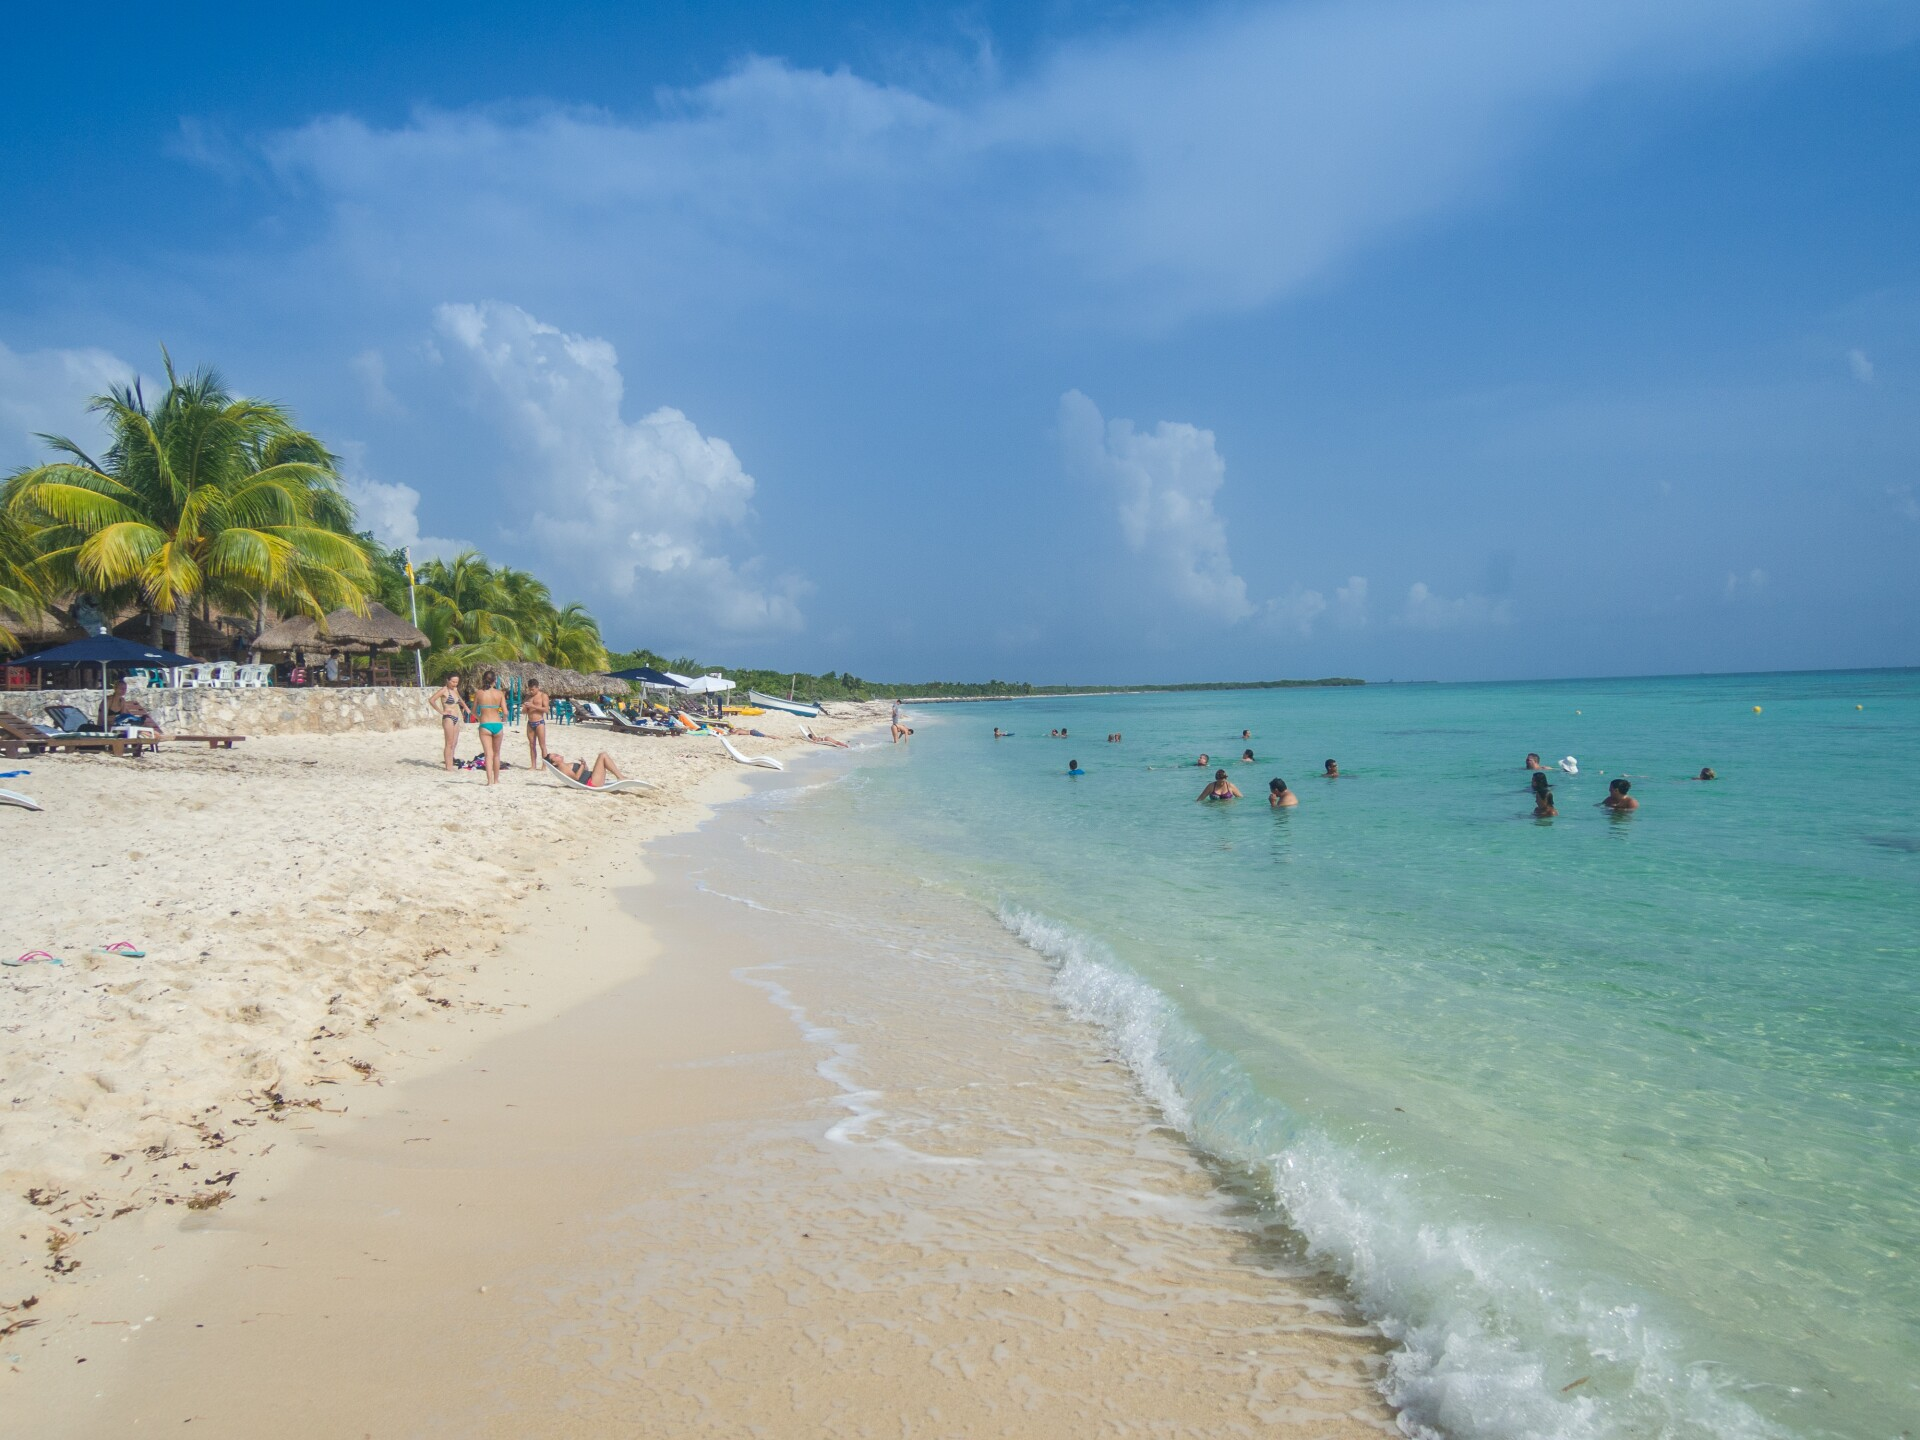 Cozumel Beach in Mexico